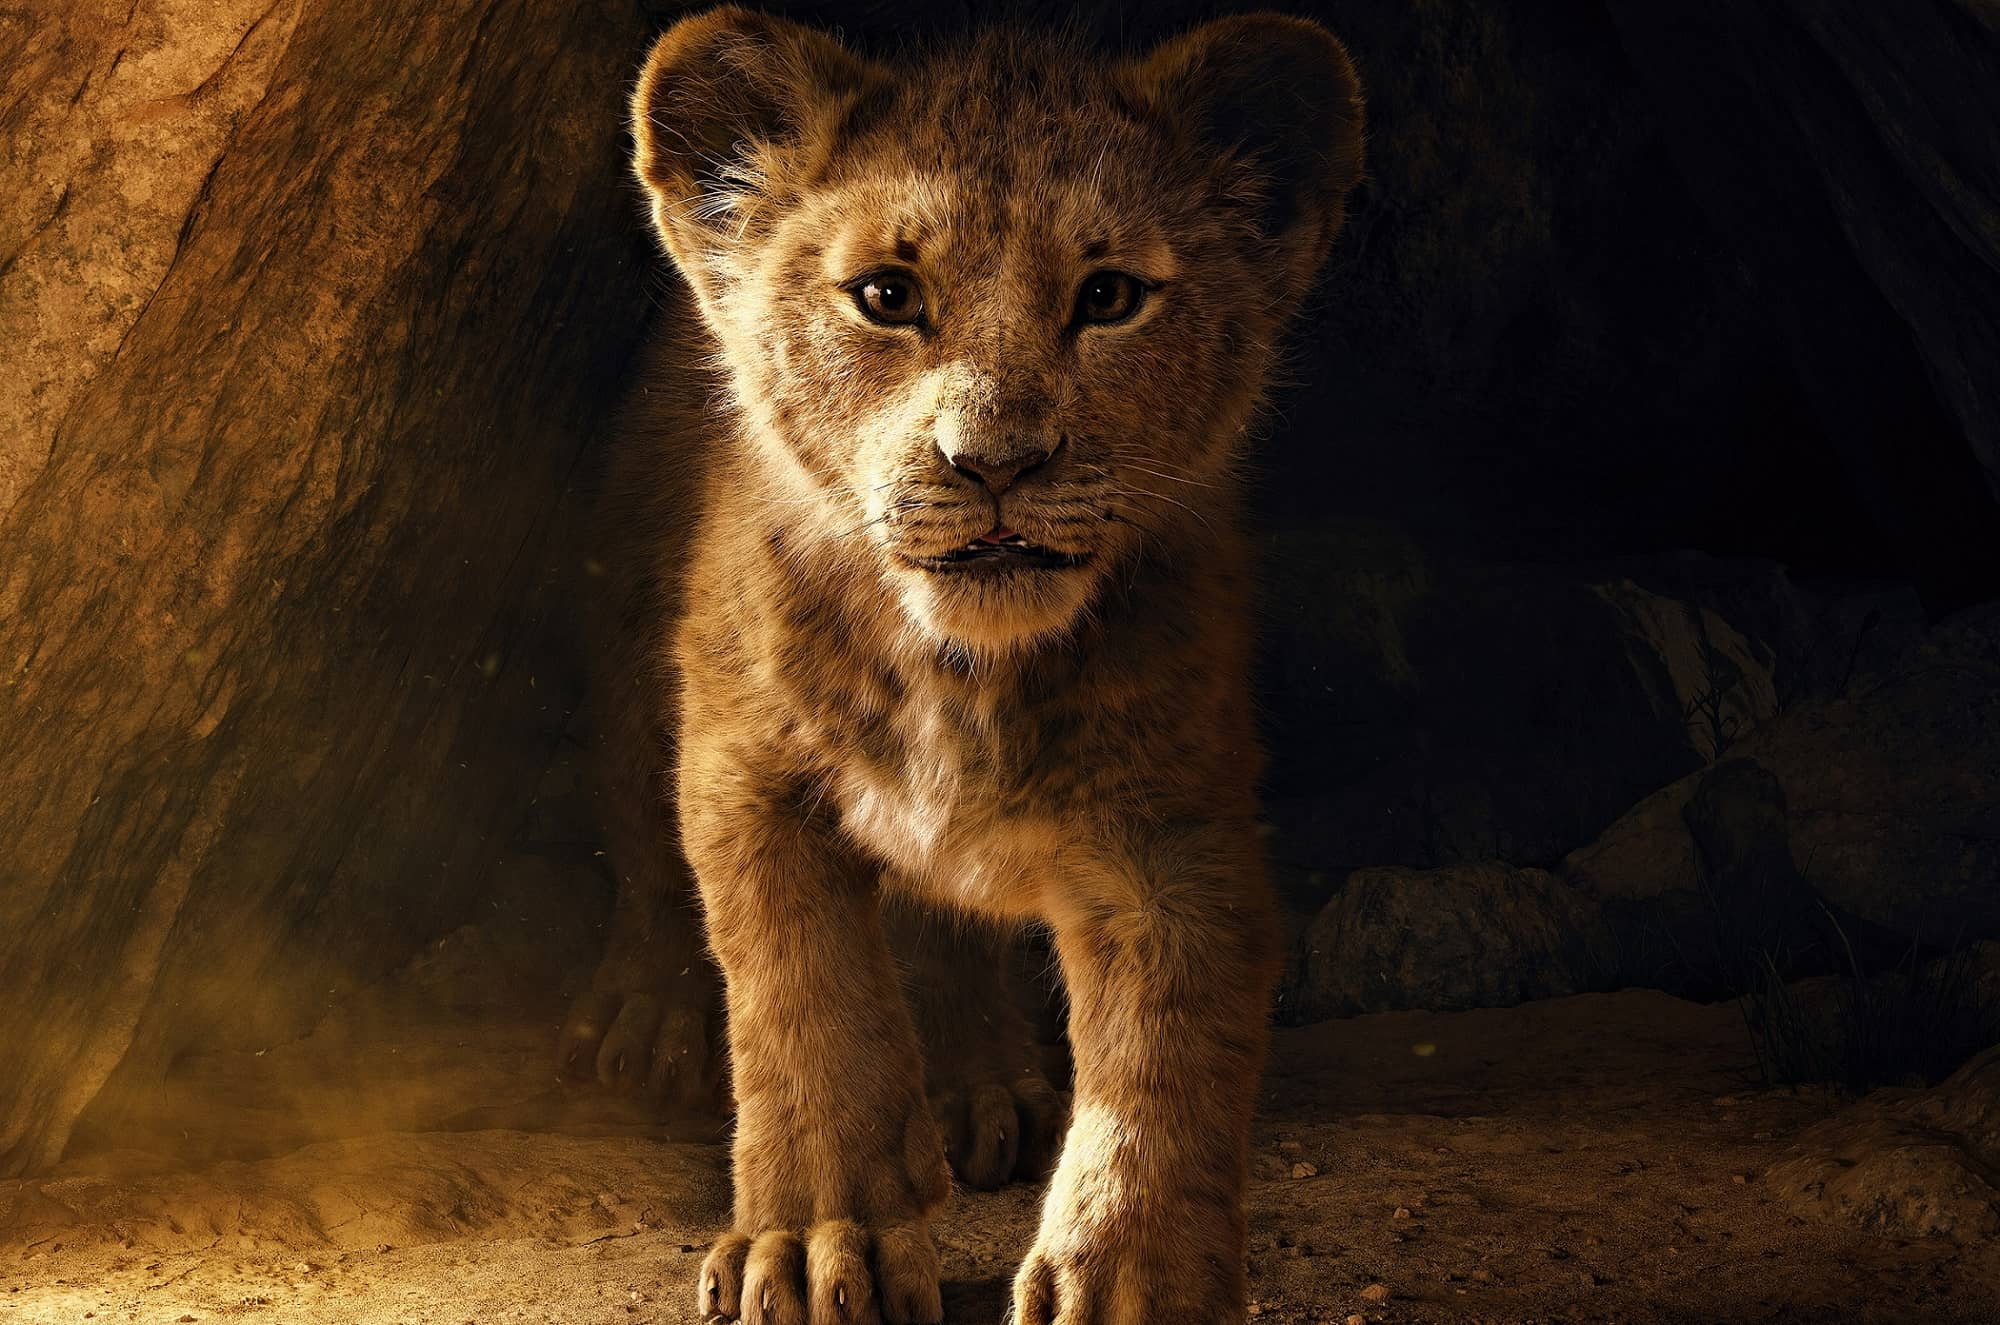 'Lion King' Returns But It's Harder To Feel The Love